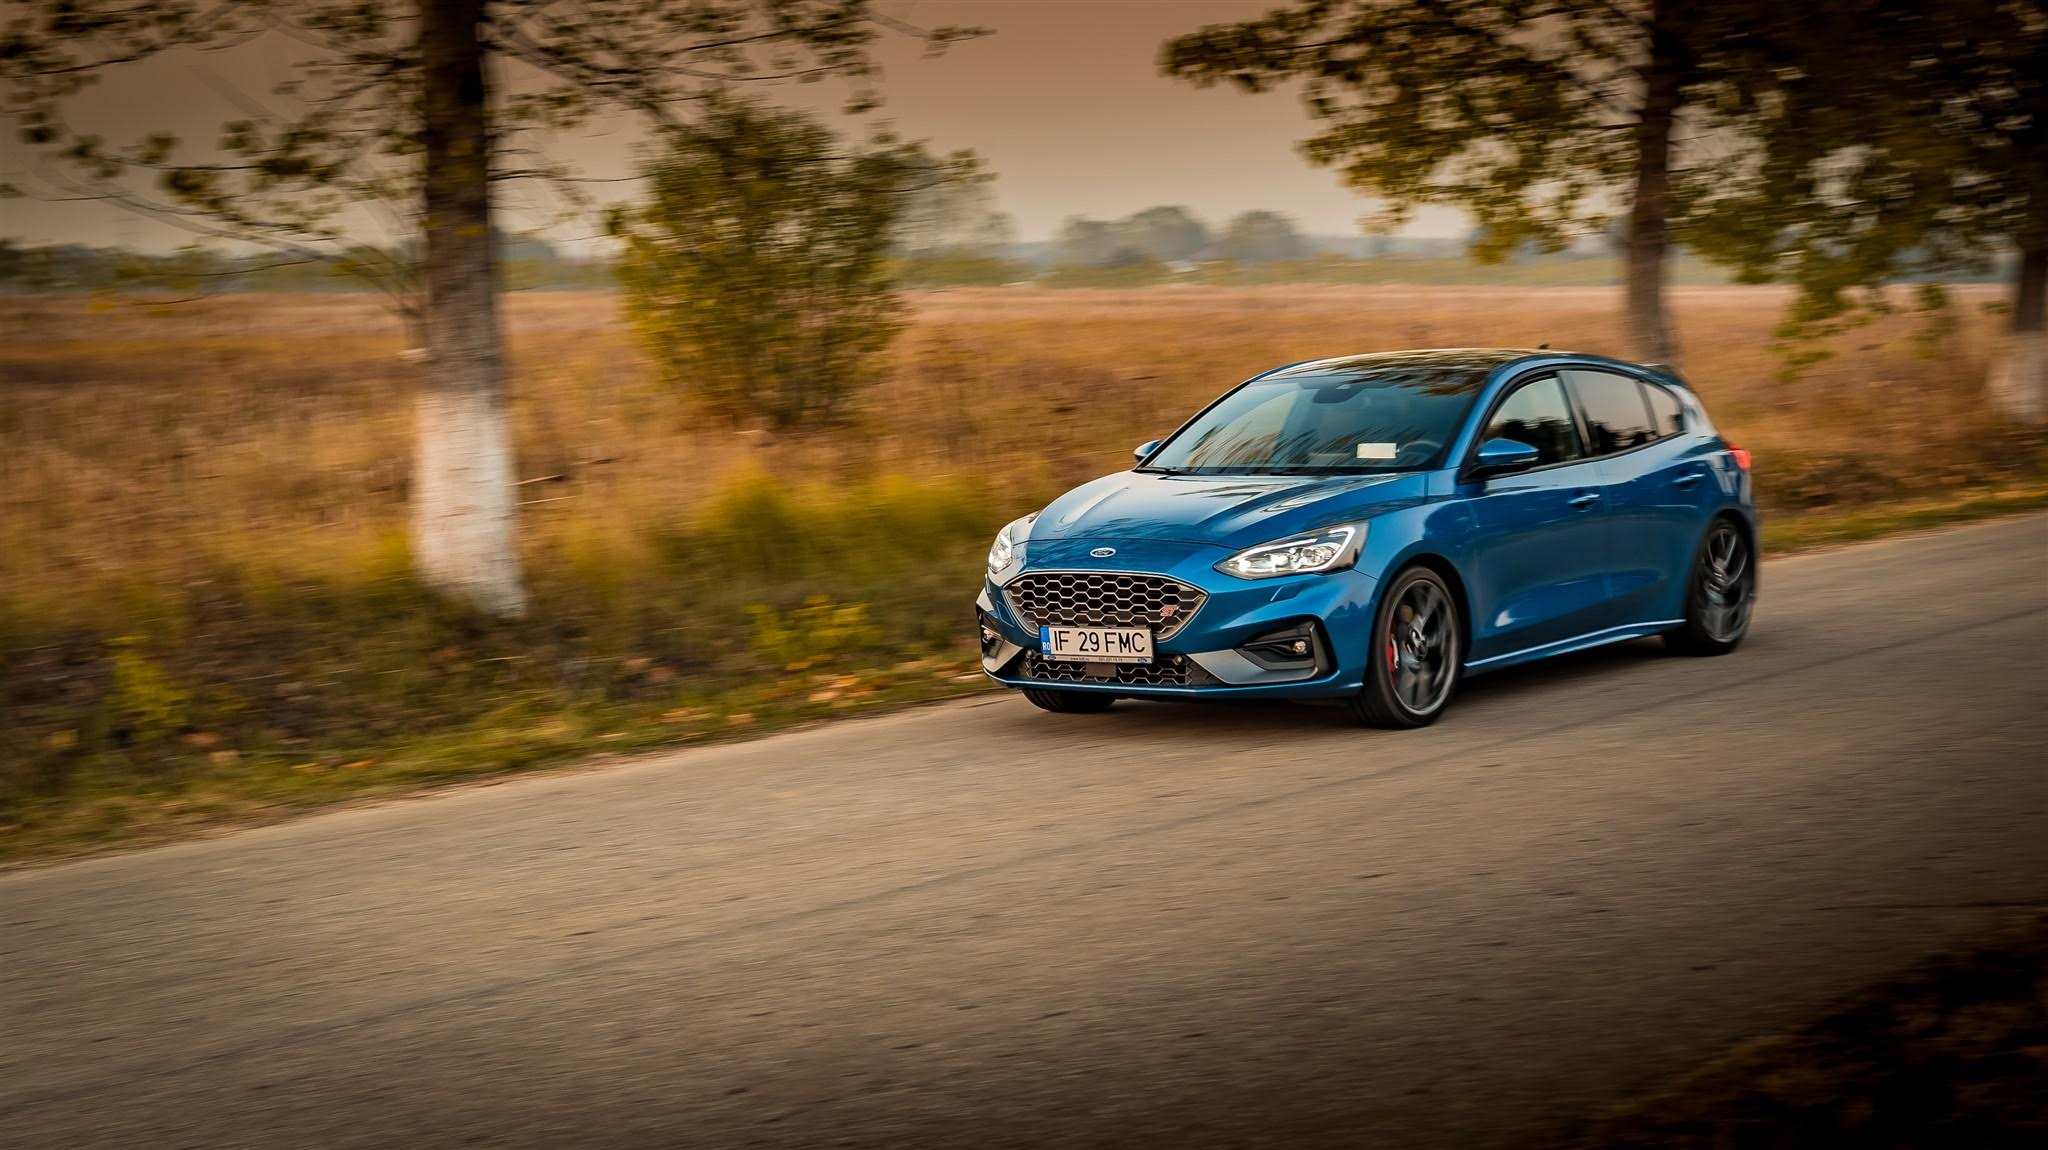 Ford Focus ST 2019 2.3 EcoBoost 280 CP M6